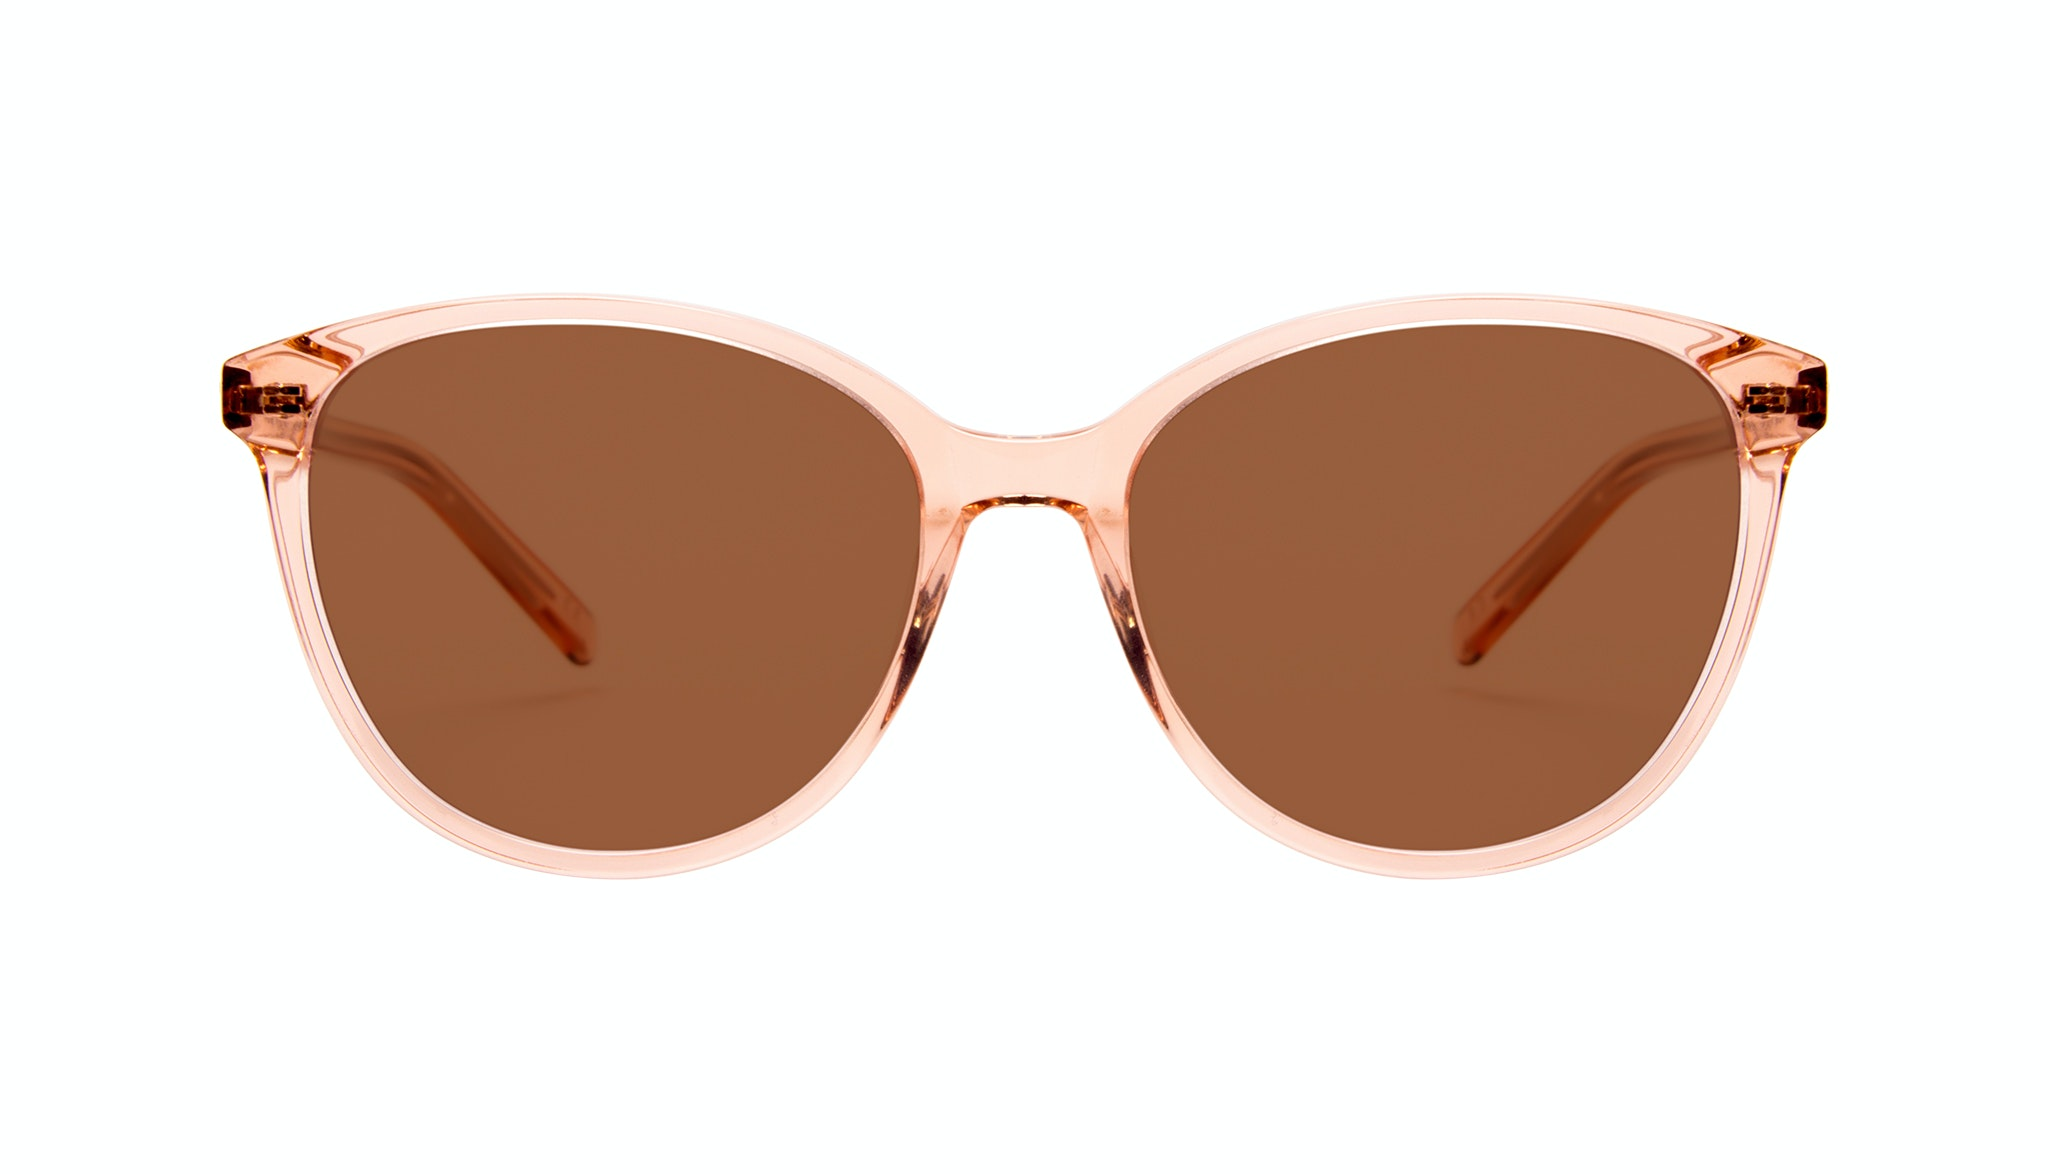 Affordable Fashion Glasses Cat Eye Round Sunglasses Women Imagine Peach Front